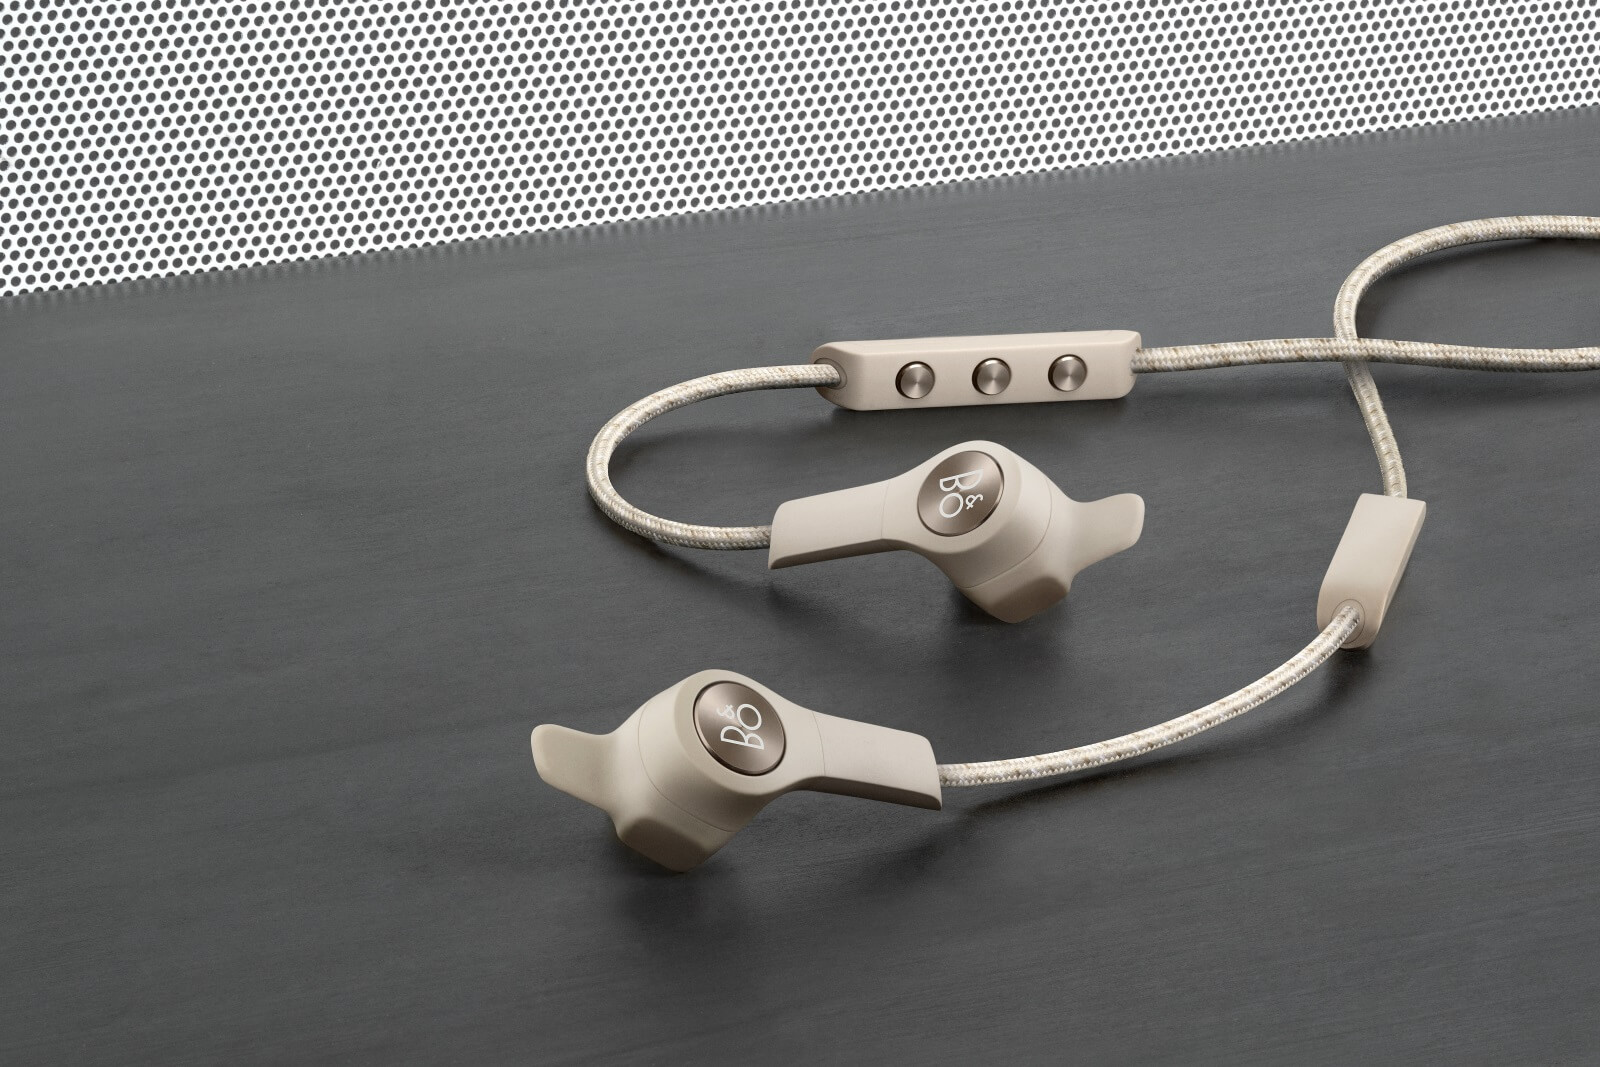 BeoPlay E6 - Update of the BeoPlay H5